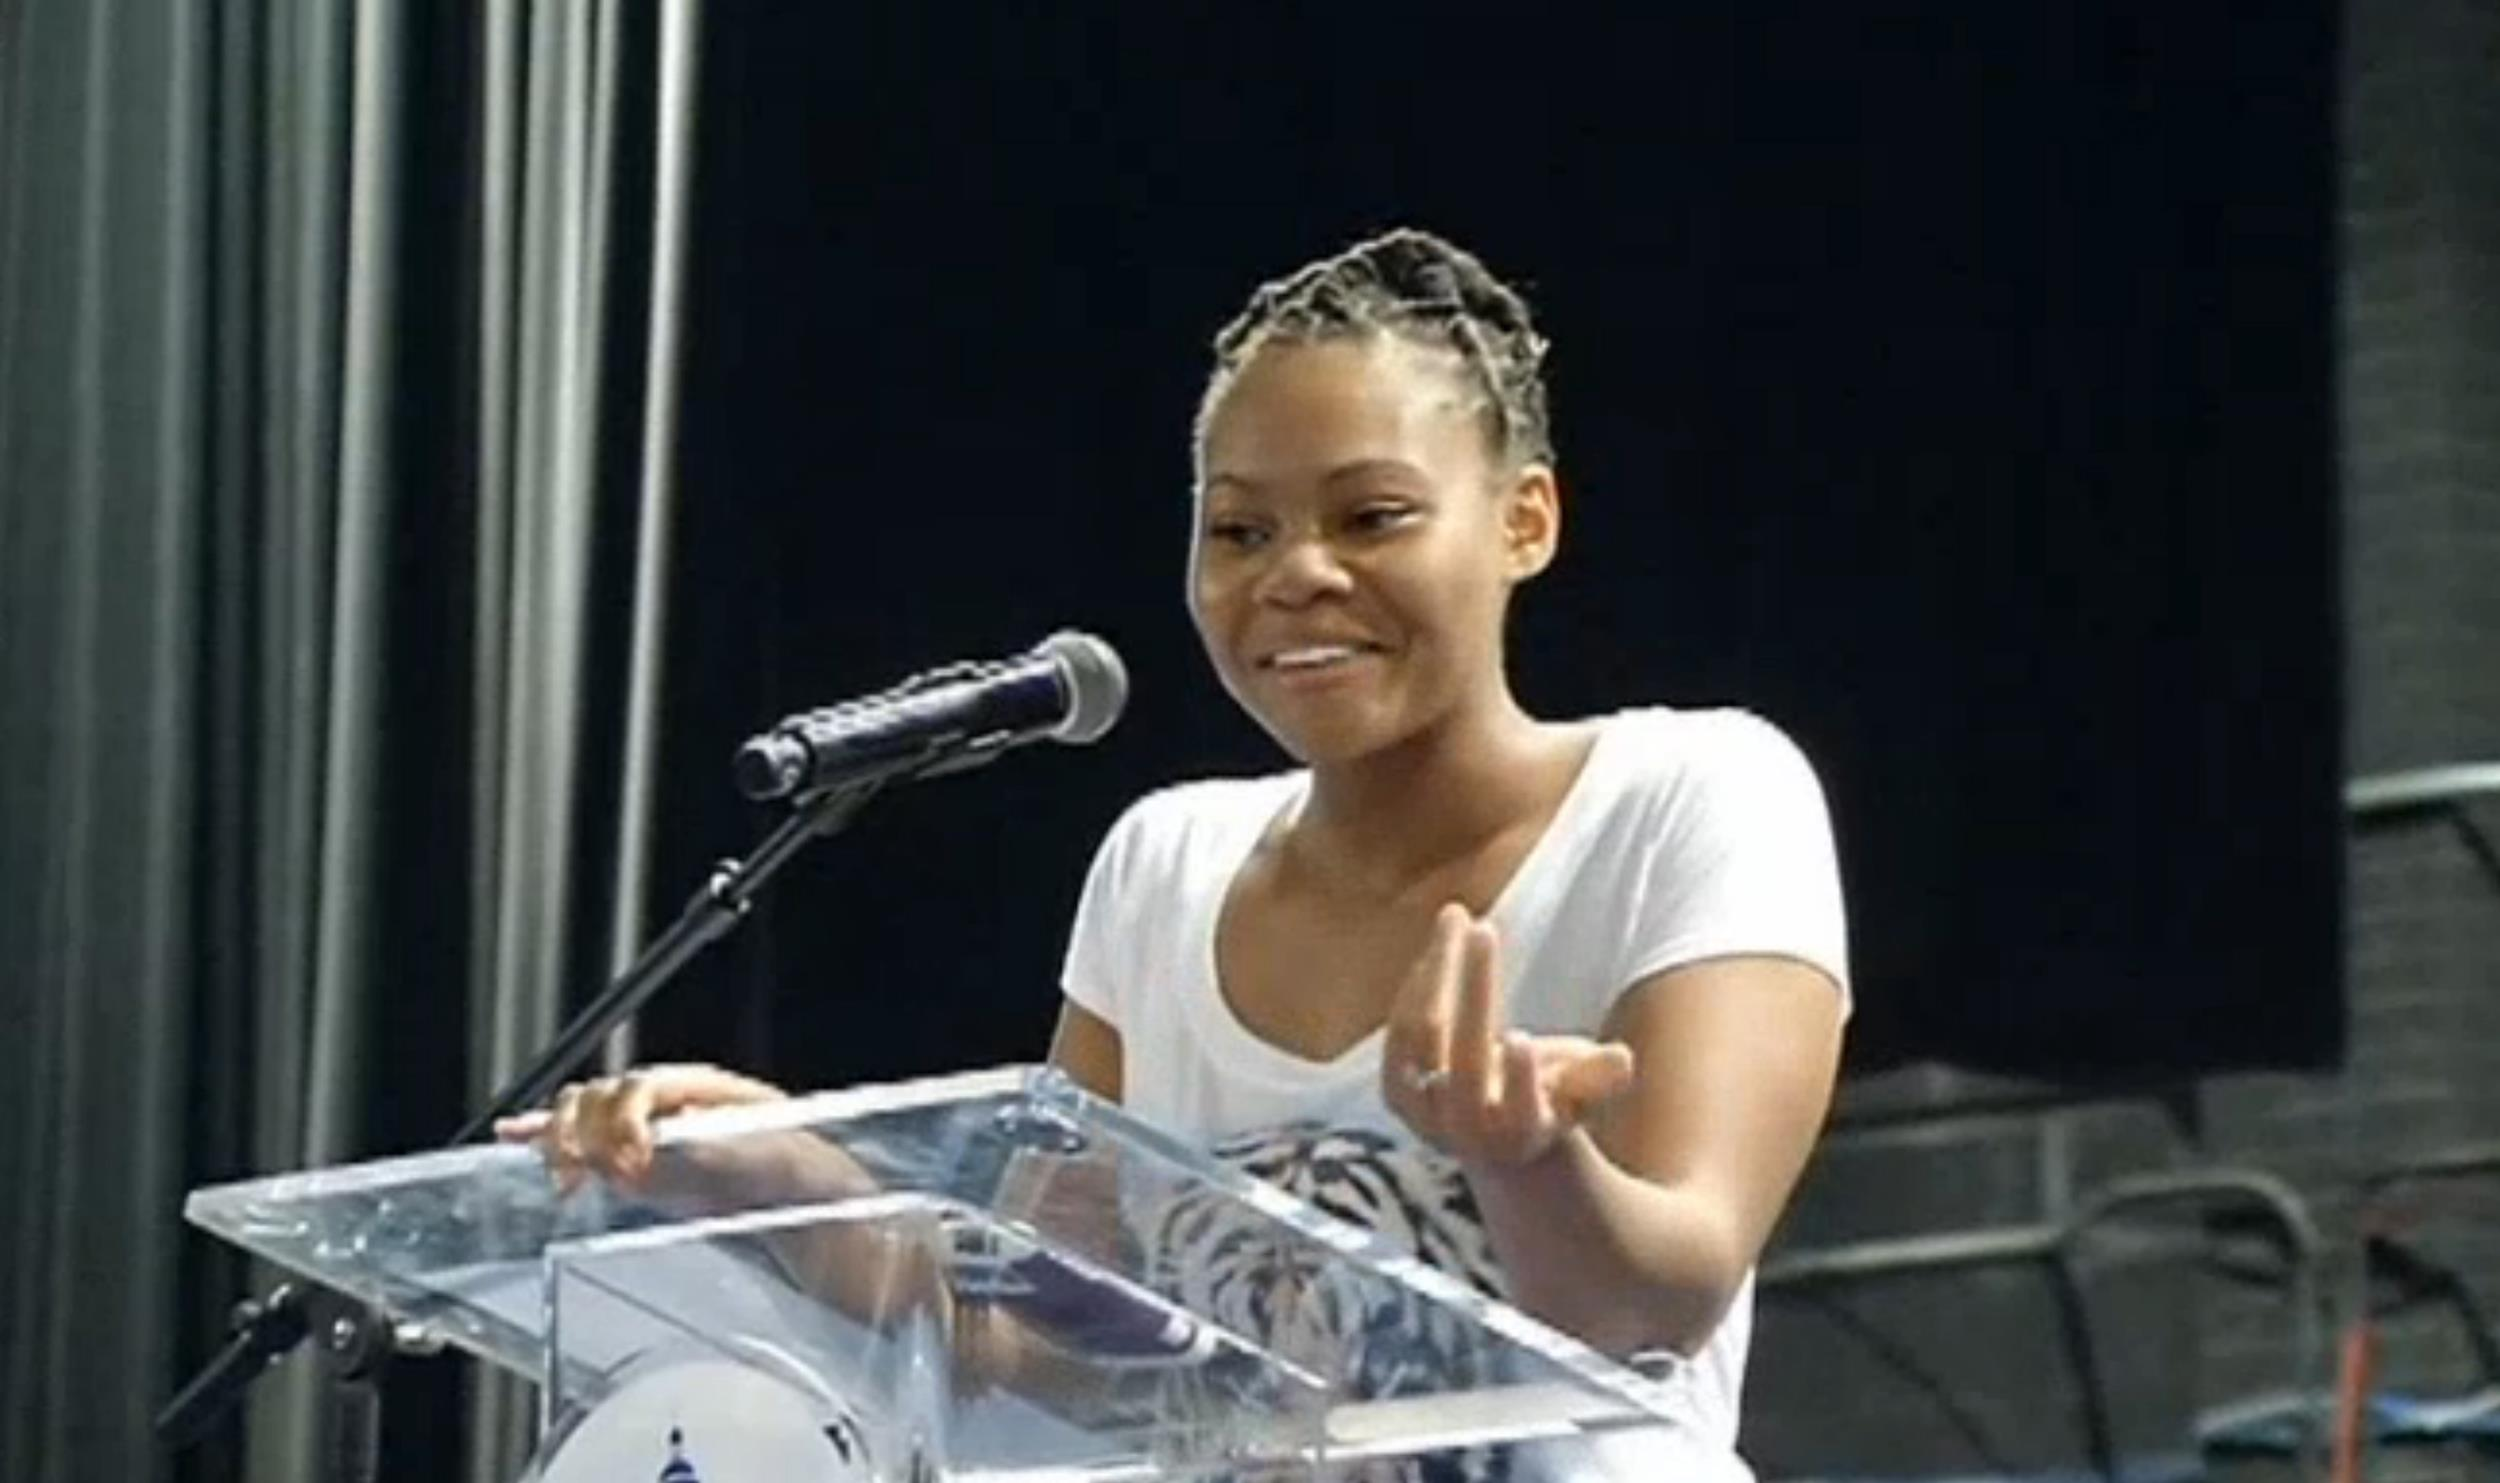 Image: High school valedictorian Rashema Melson earned a a college scholarship despite living at a homeless shelter.